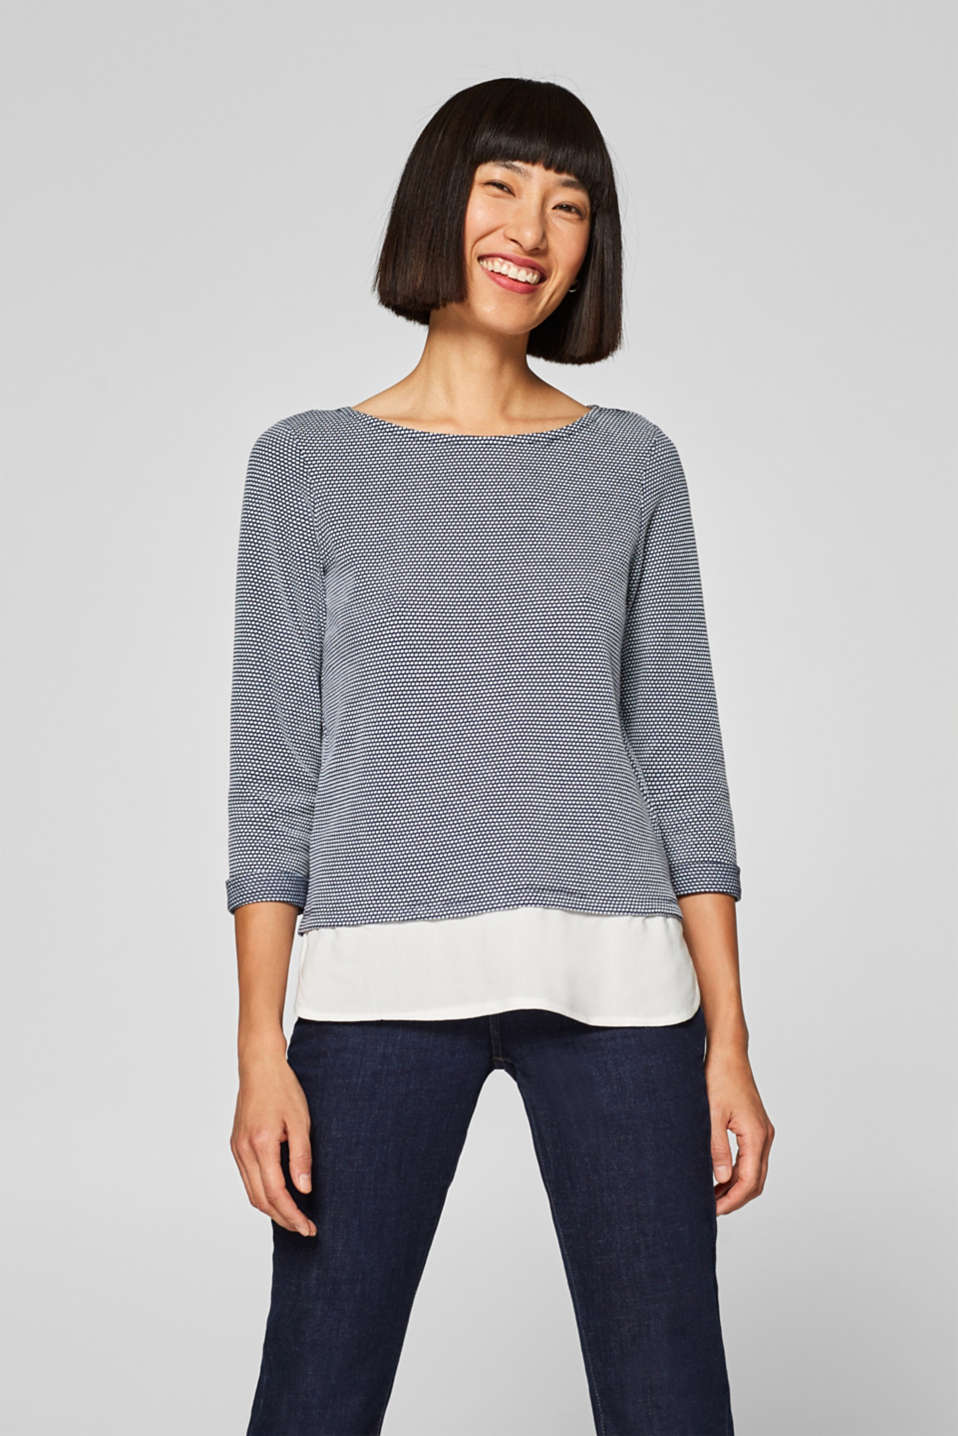 Esprit - Textured tee in a layered look